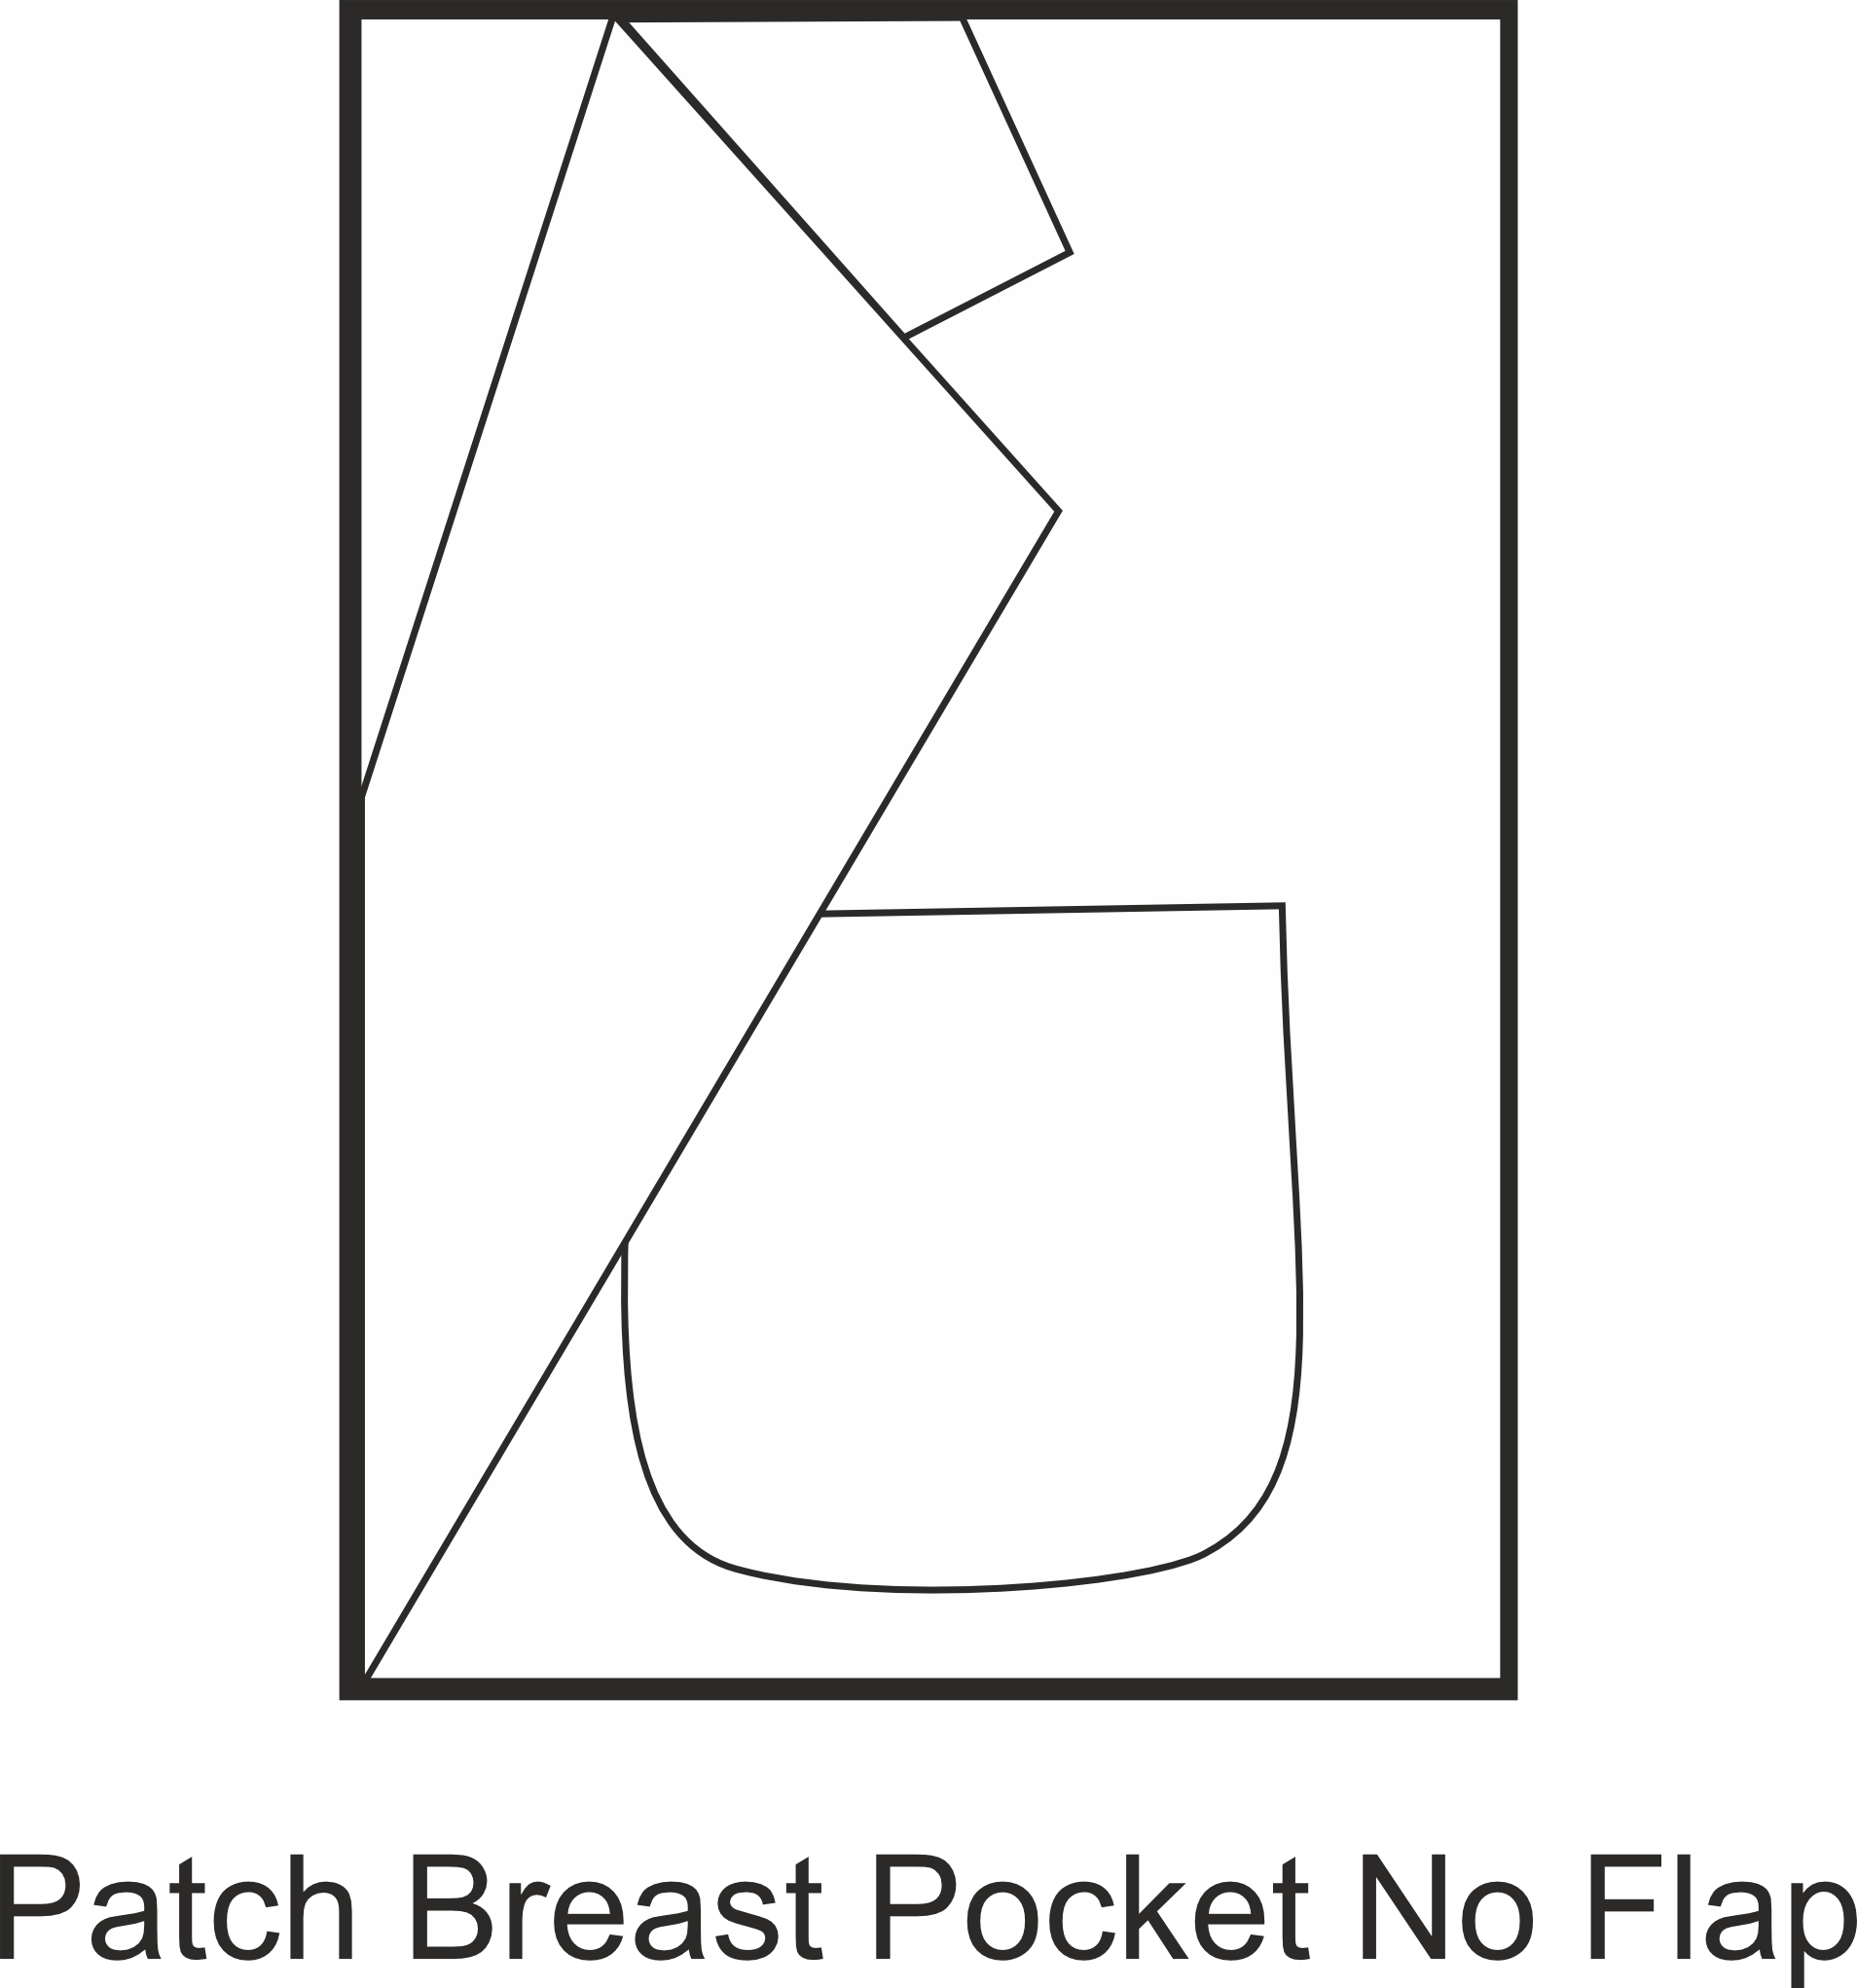 pocket-patch-breast-no-flap